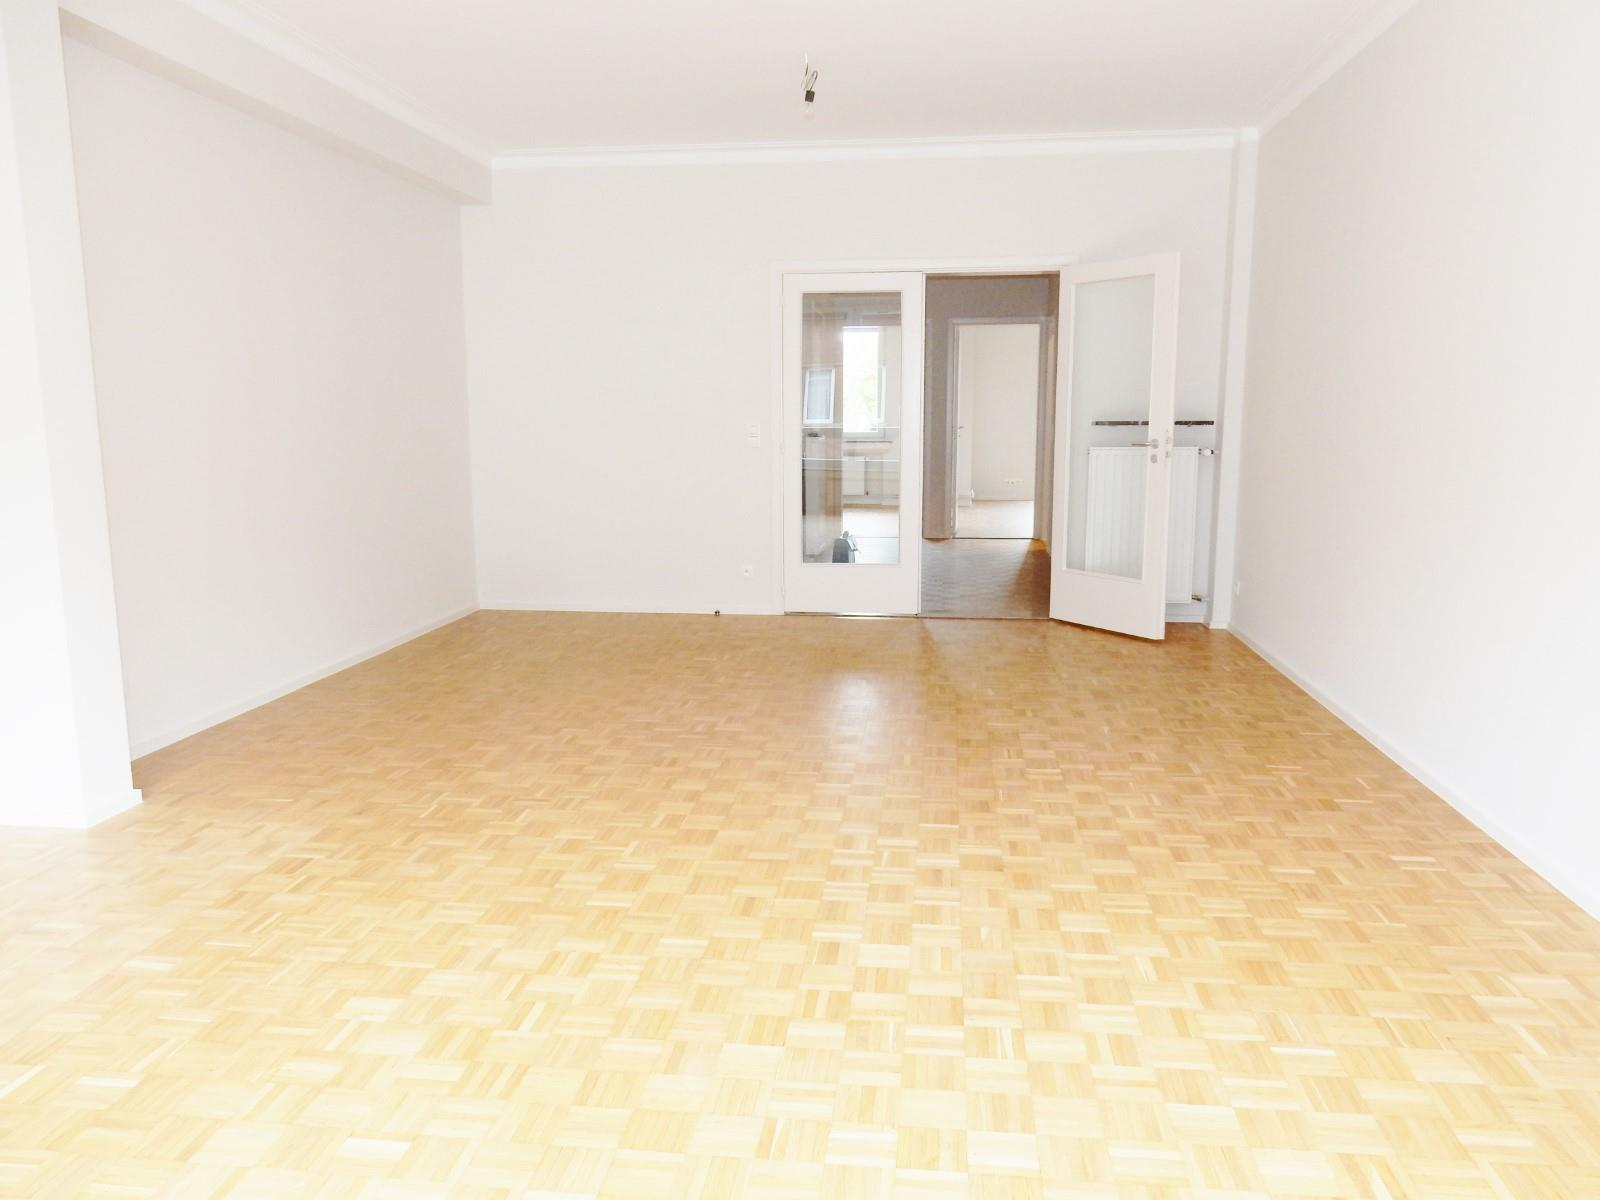 Appartement exceptionnel - Uccle - #3601428-2